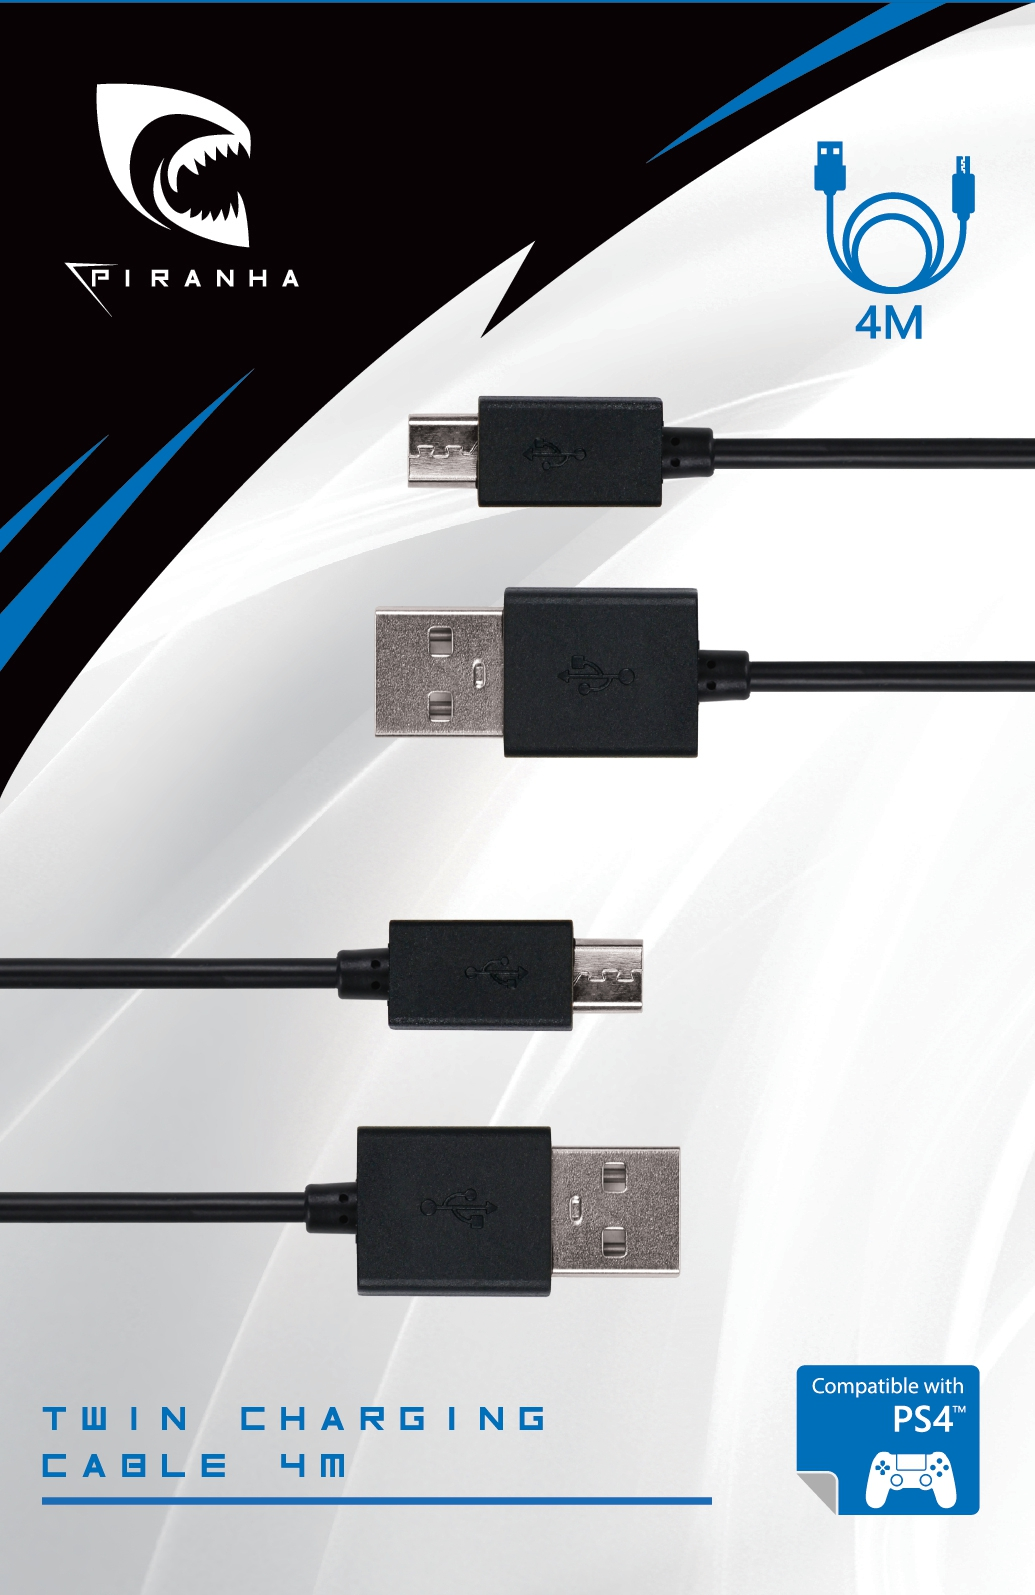 Piranha PS4 Twin Charging Cable 4M